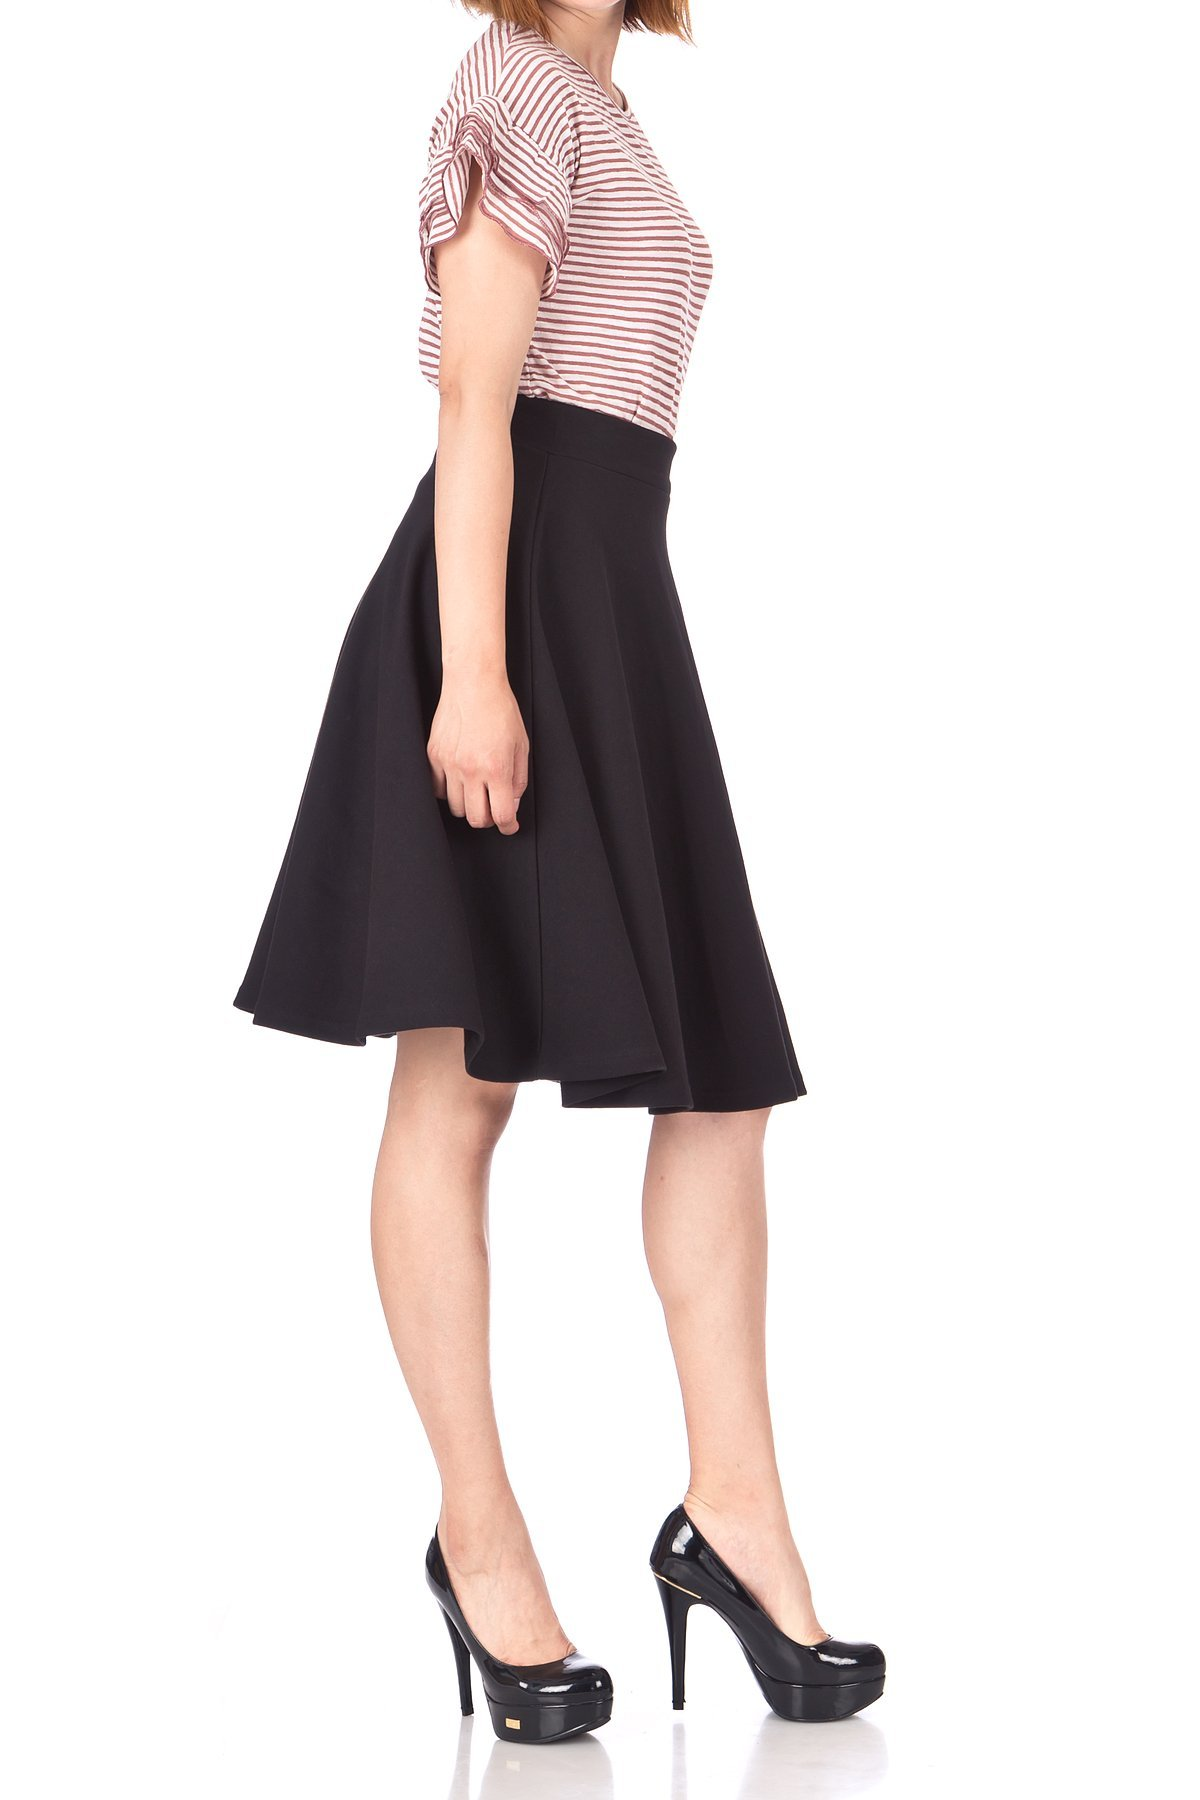 Comfy and Lovely Cotton Blend Versatile Casual Office High Waist A line Full Flared Swing Circle Skater Knee Length Skirt Black 04